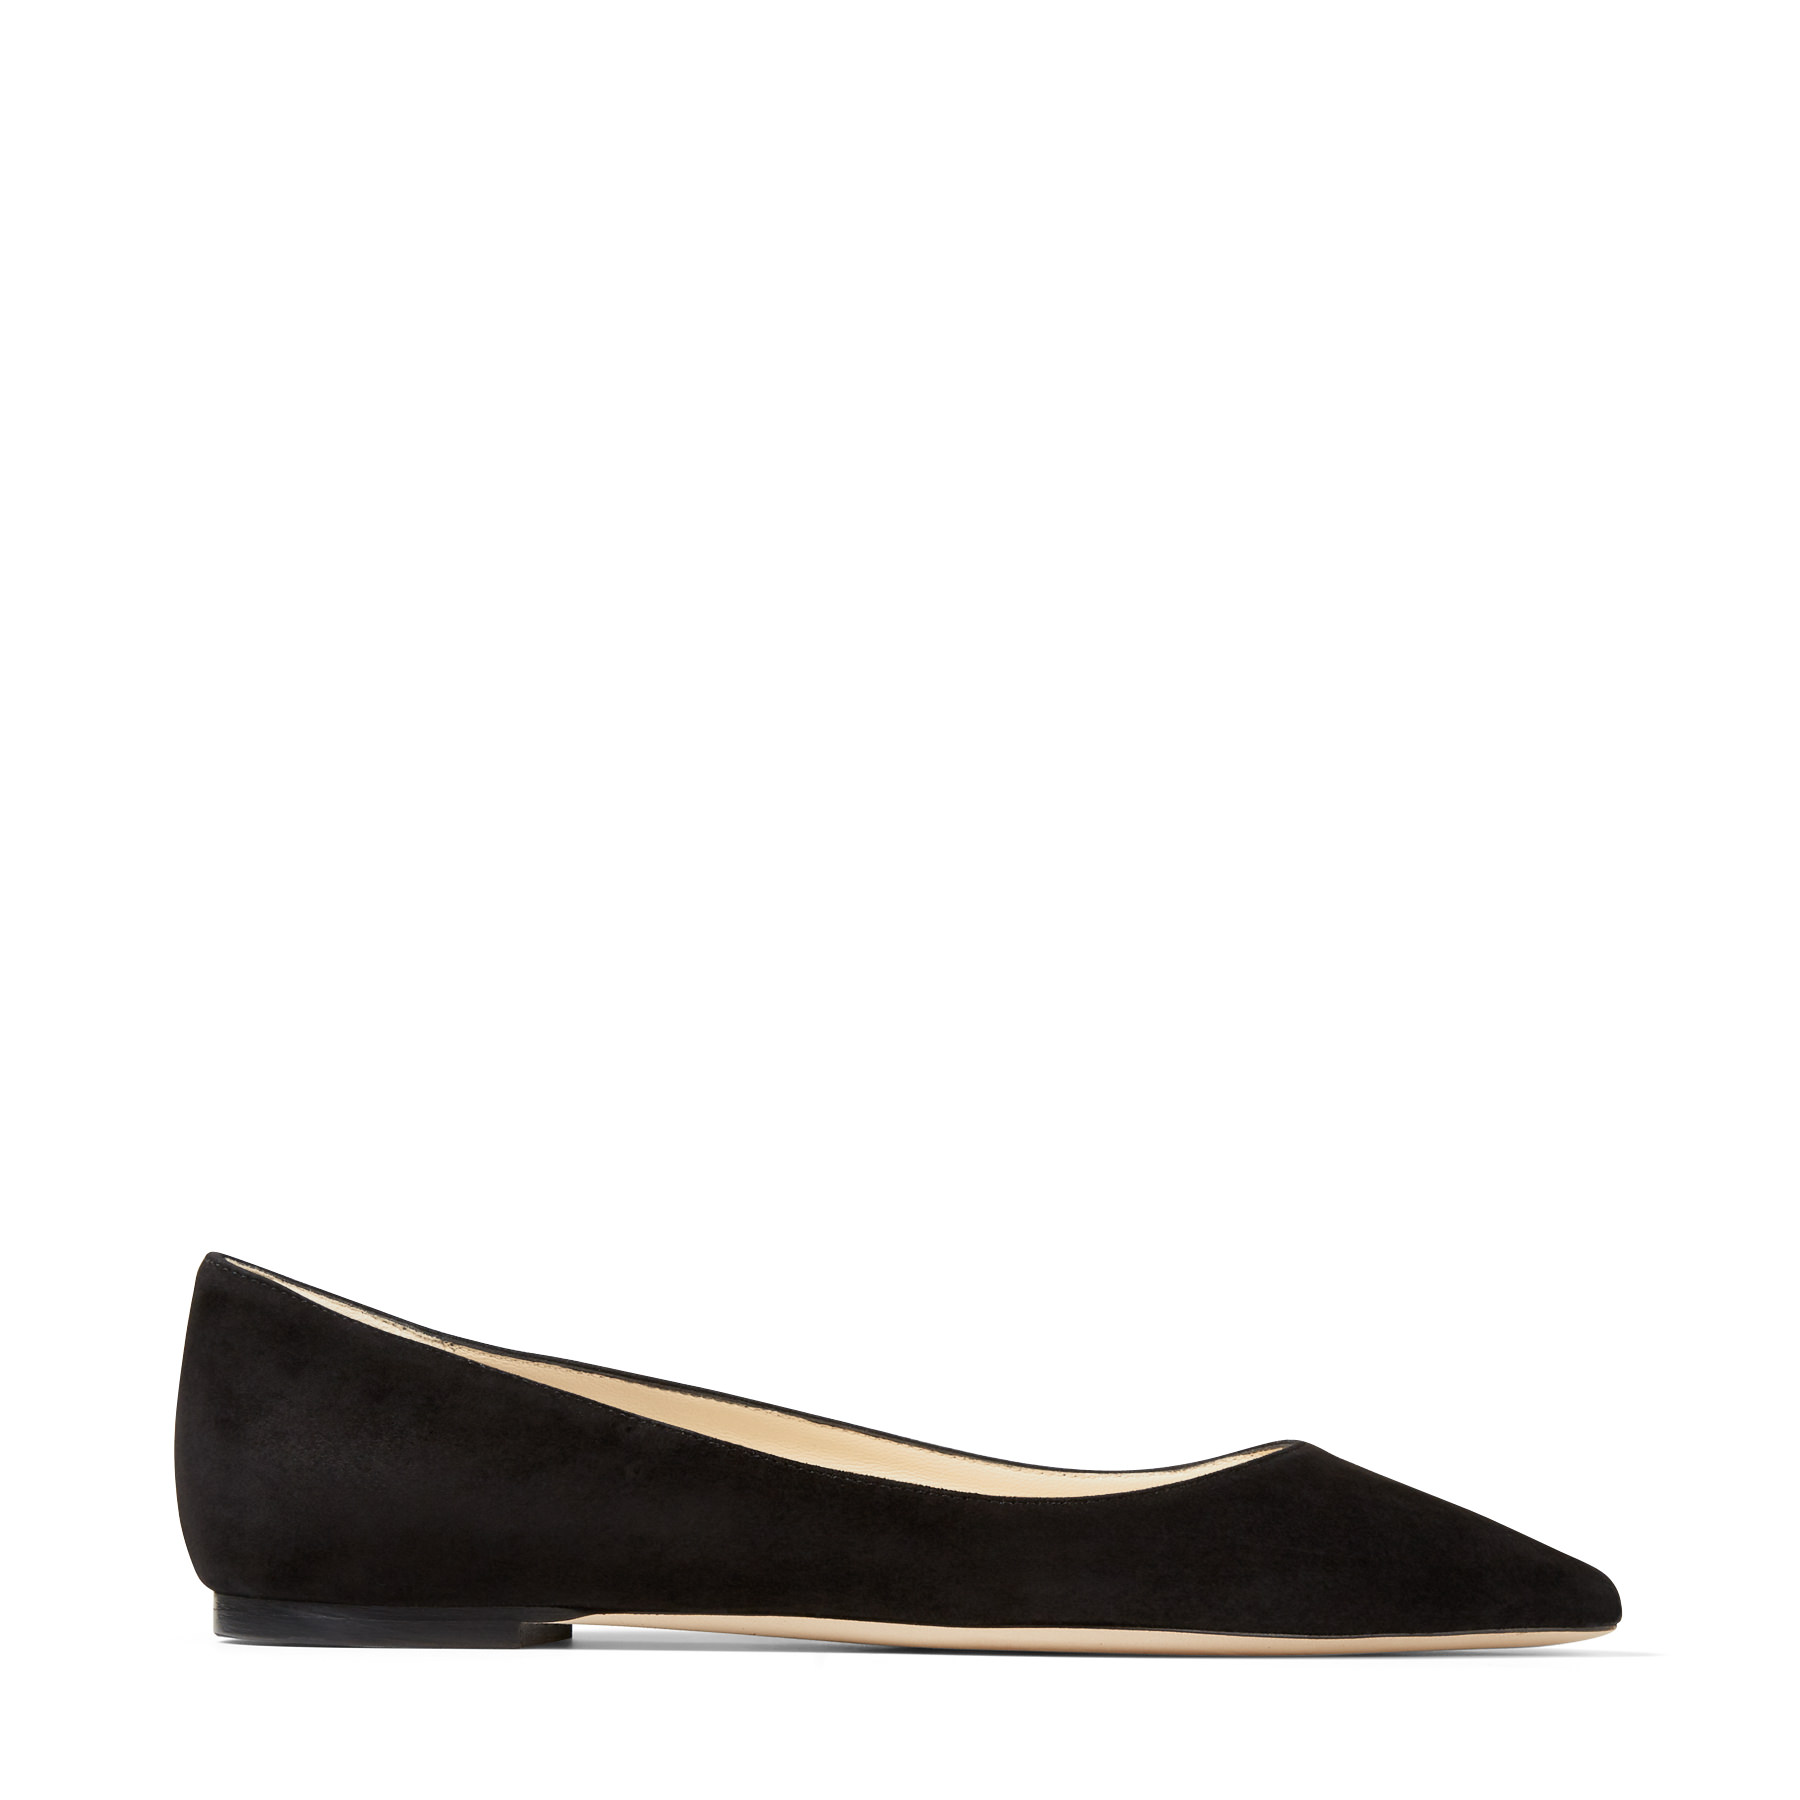 ROMY FLAT Black Suede Pointy Toe Flats